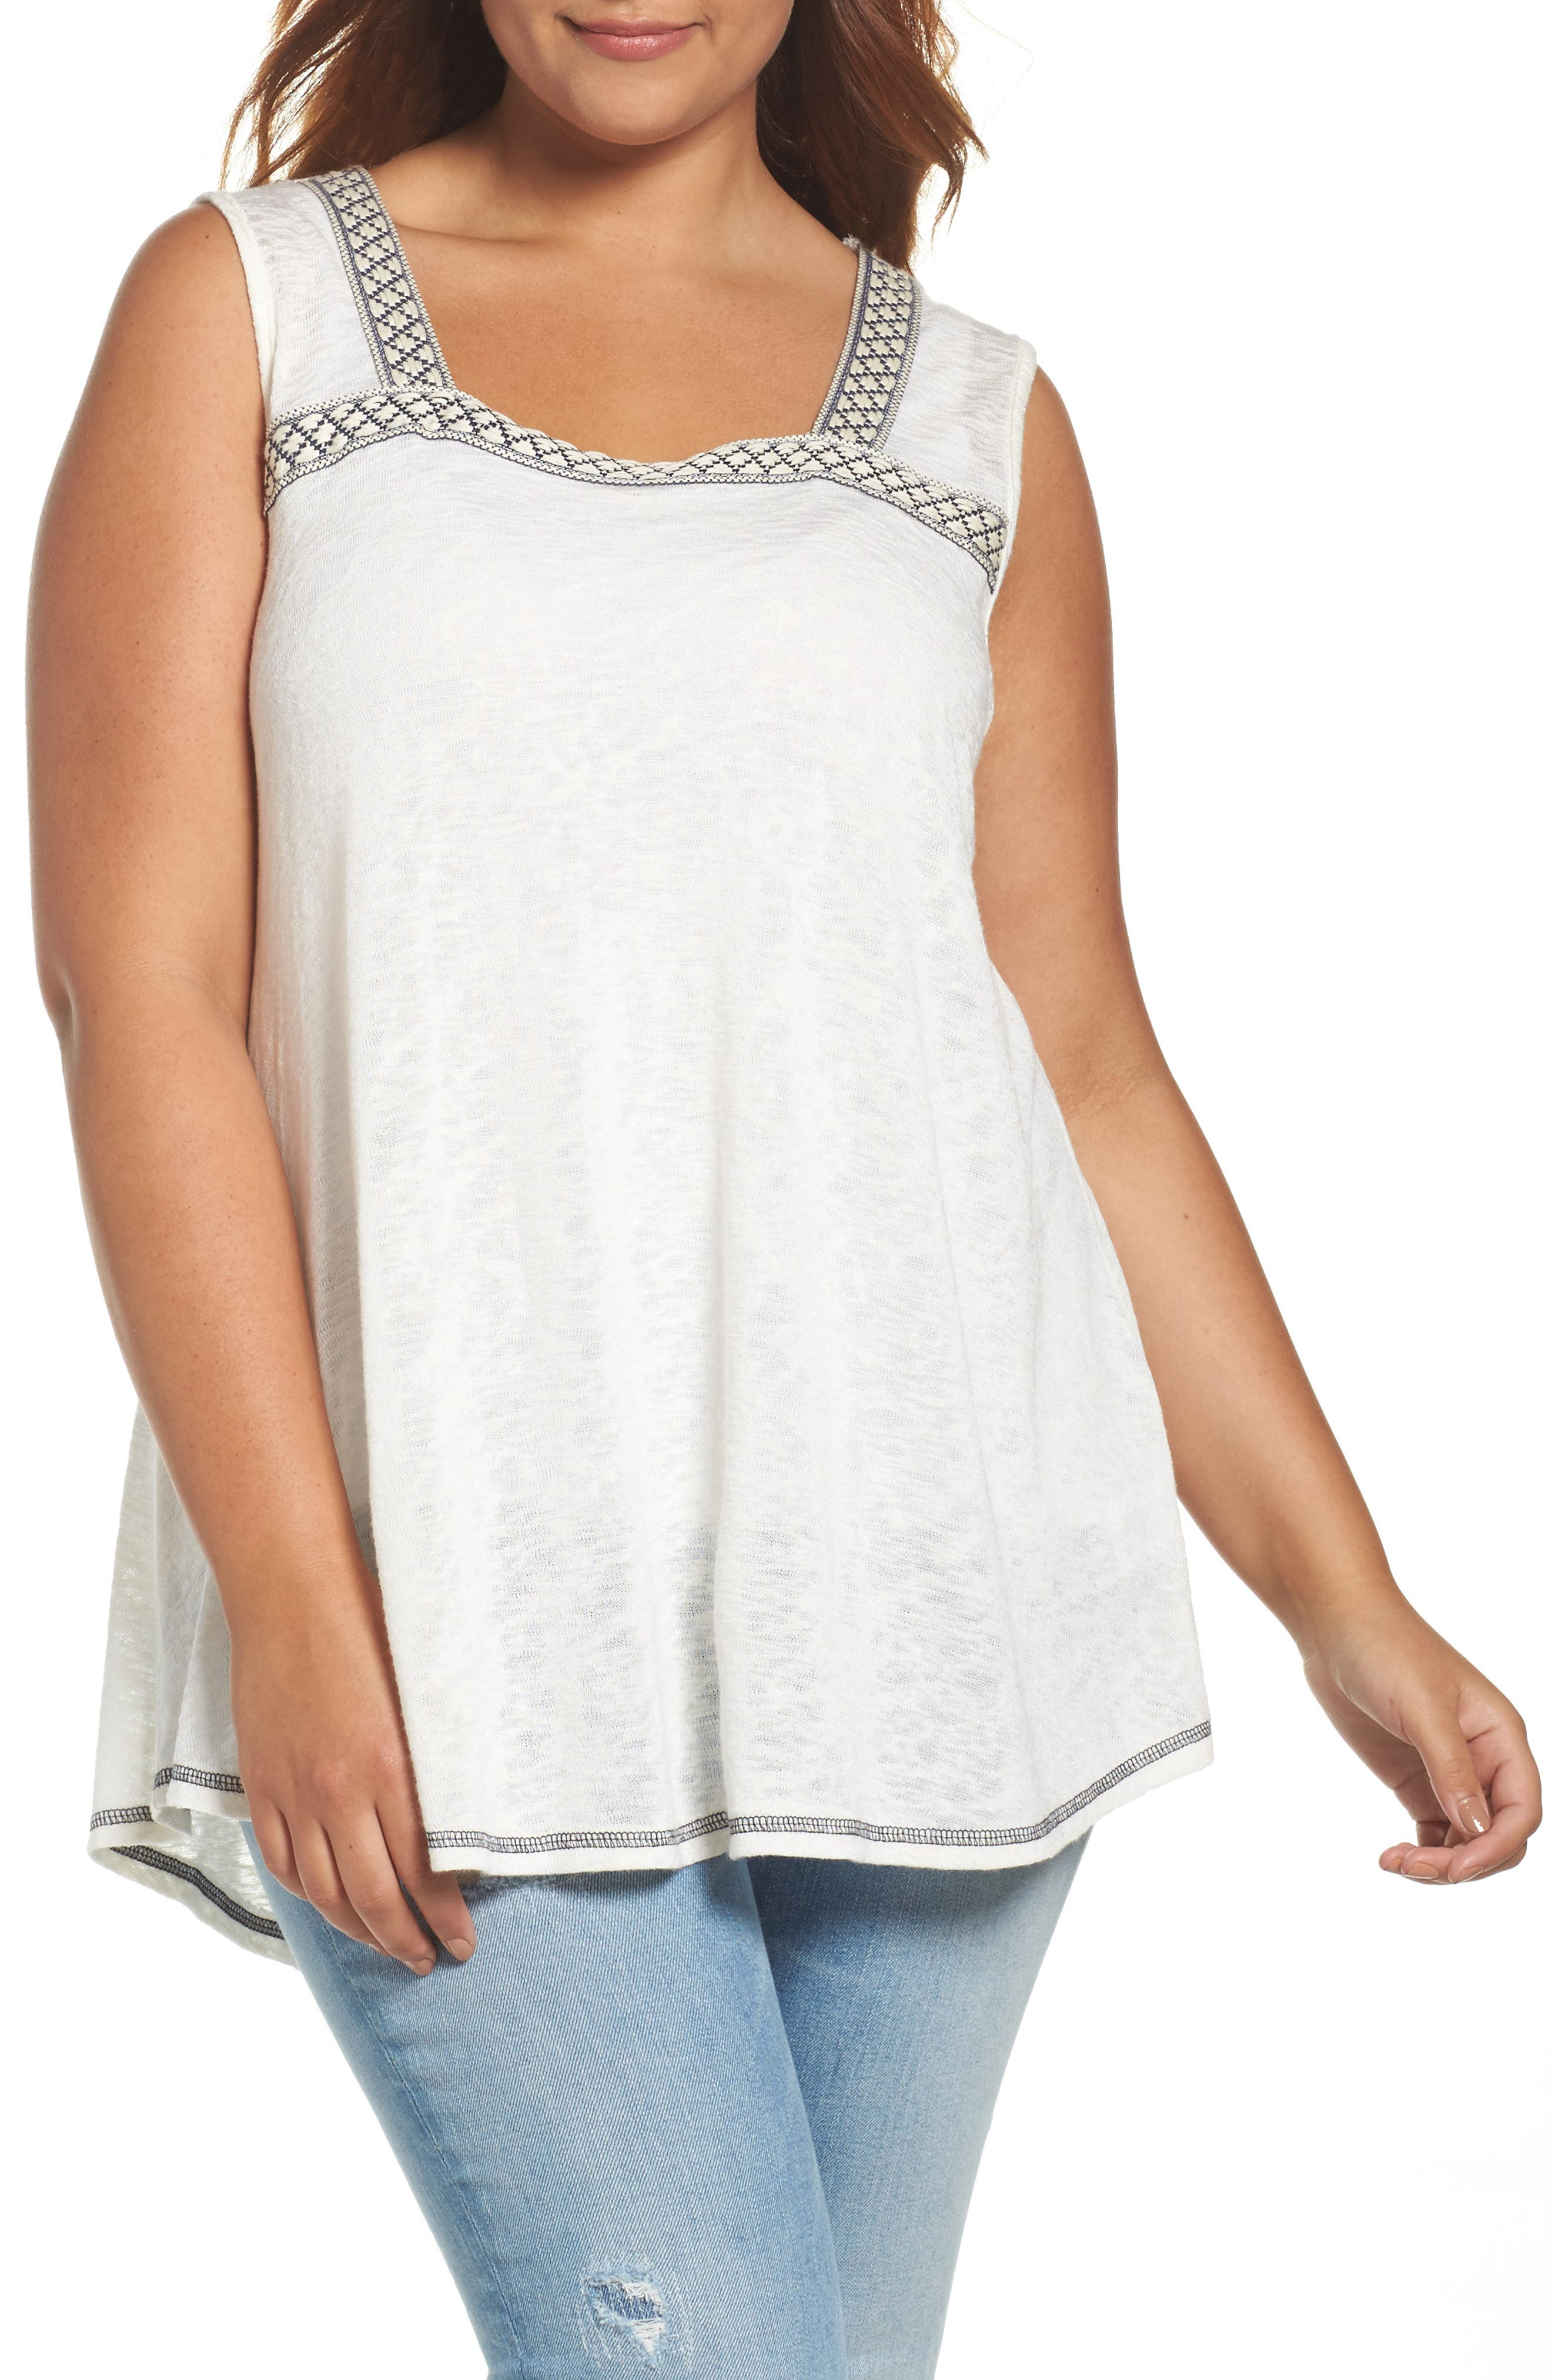 Bobeau Jacquard Trim Slub Knit Top (Plus Size)